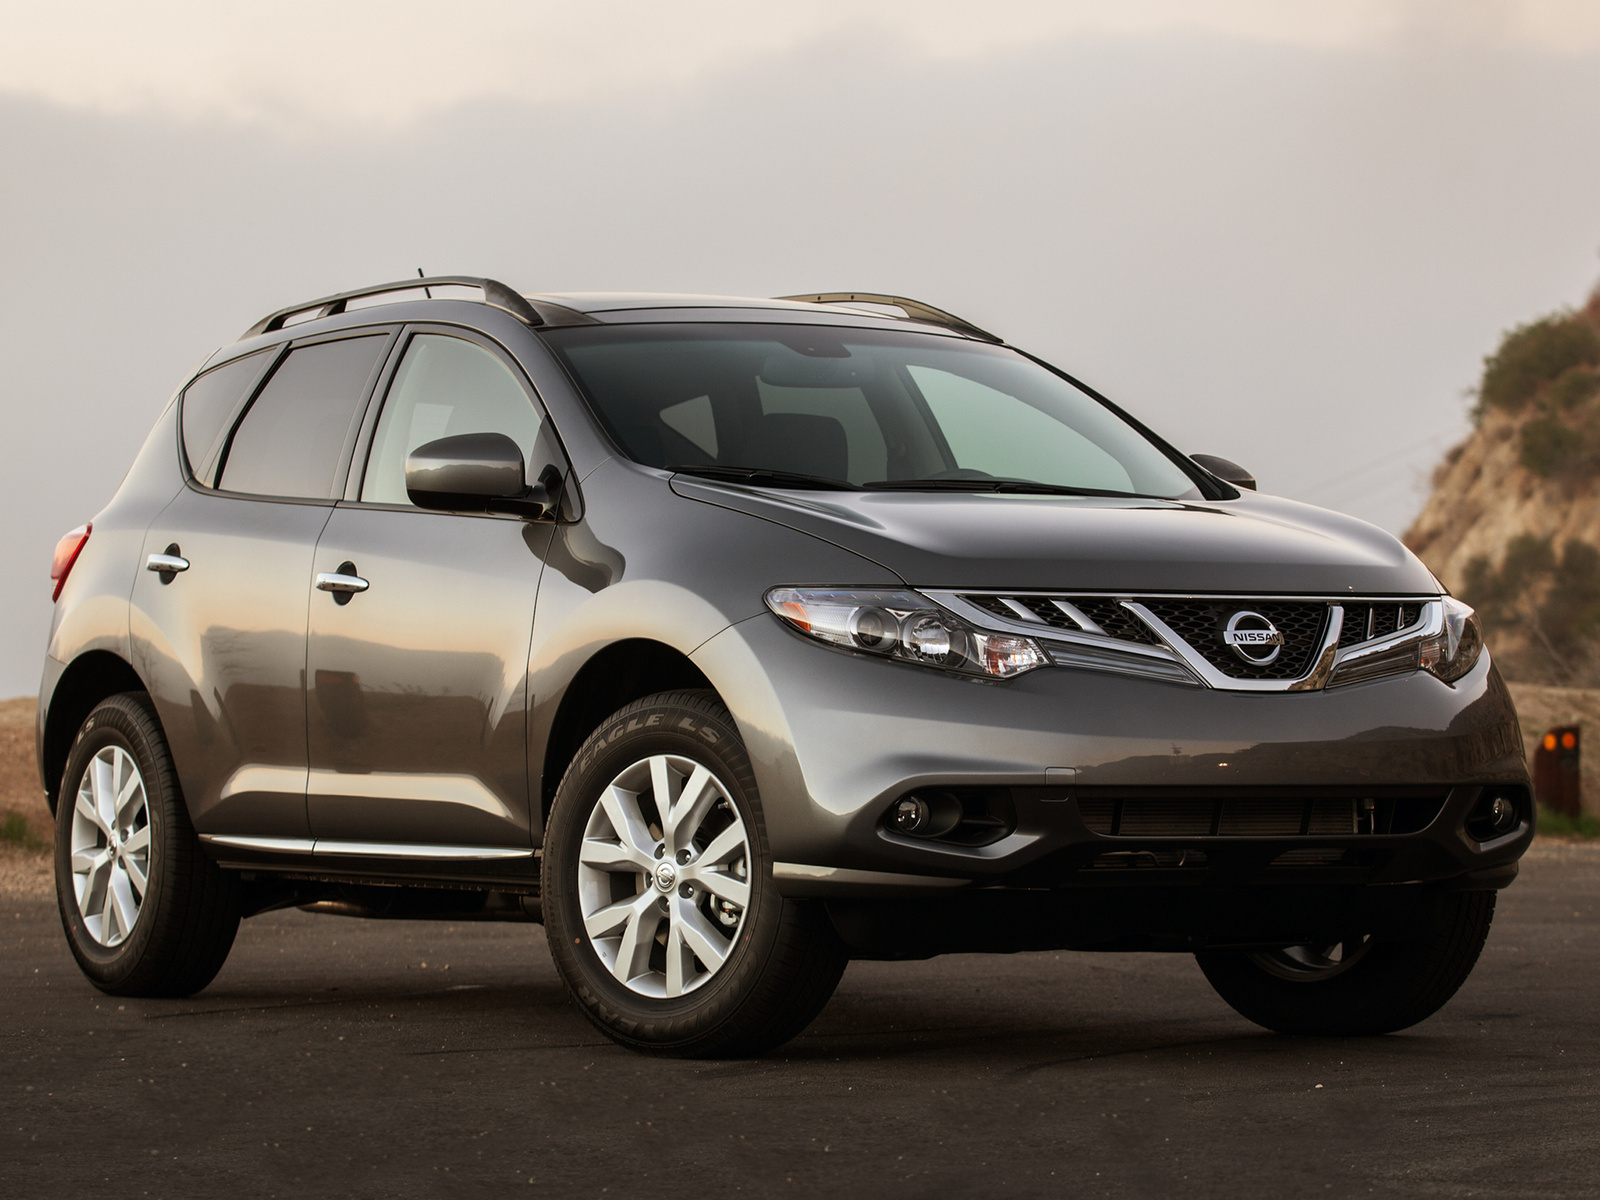 Enterprise Cars For Sale >> 2013 Nissan Murano - Review - CarGurus